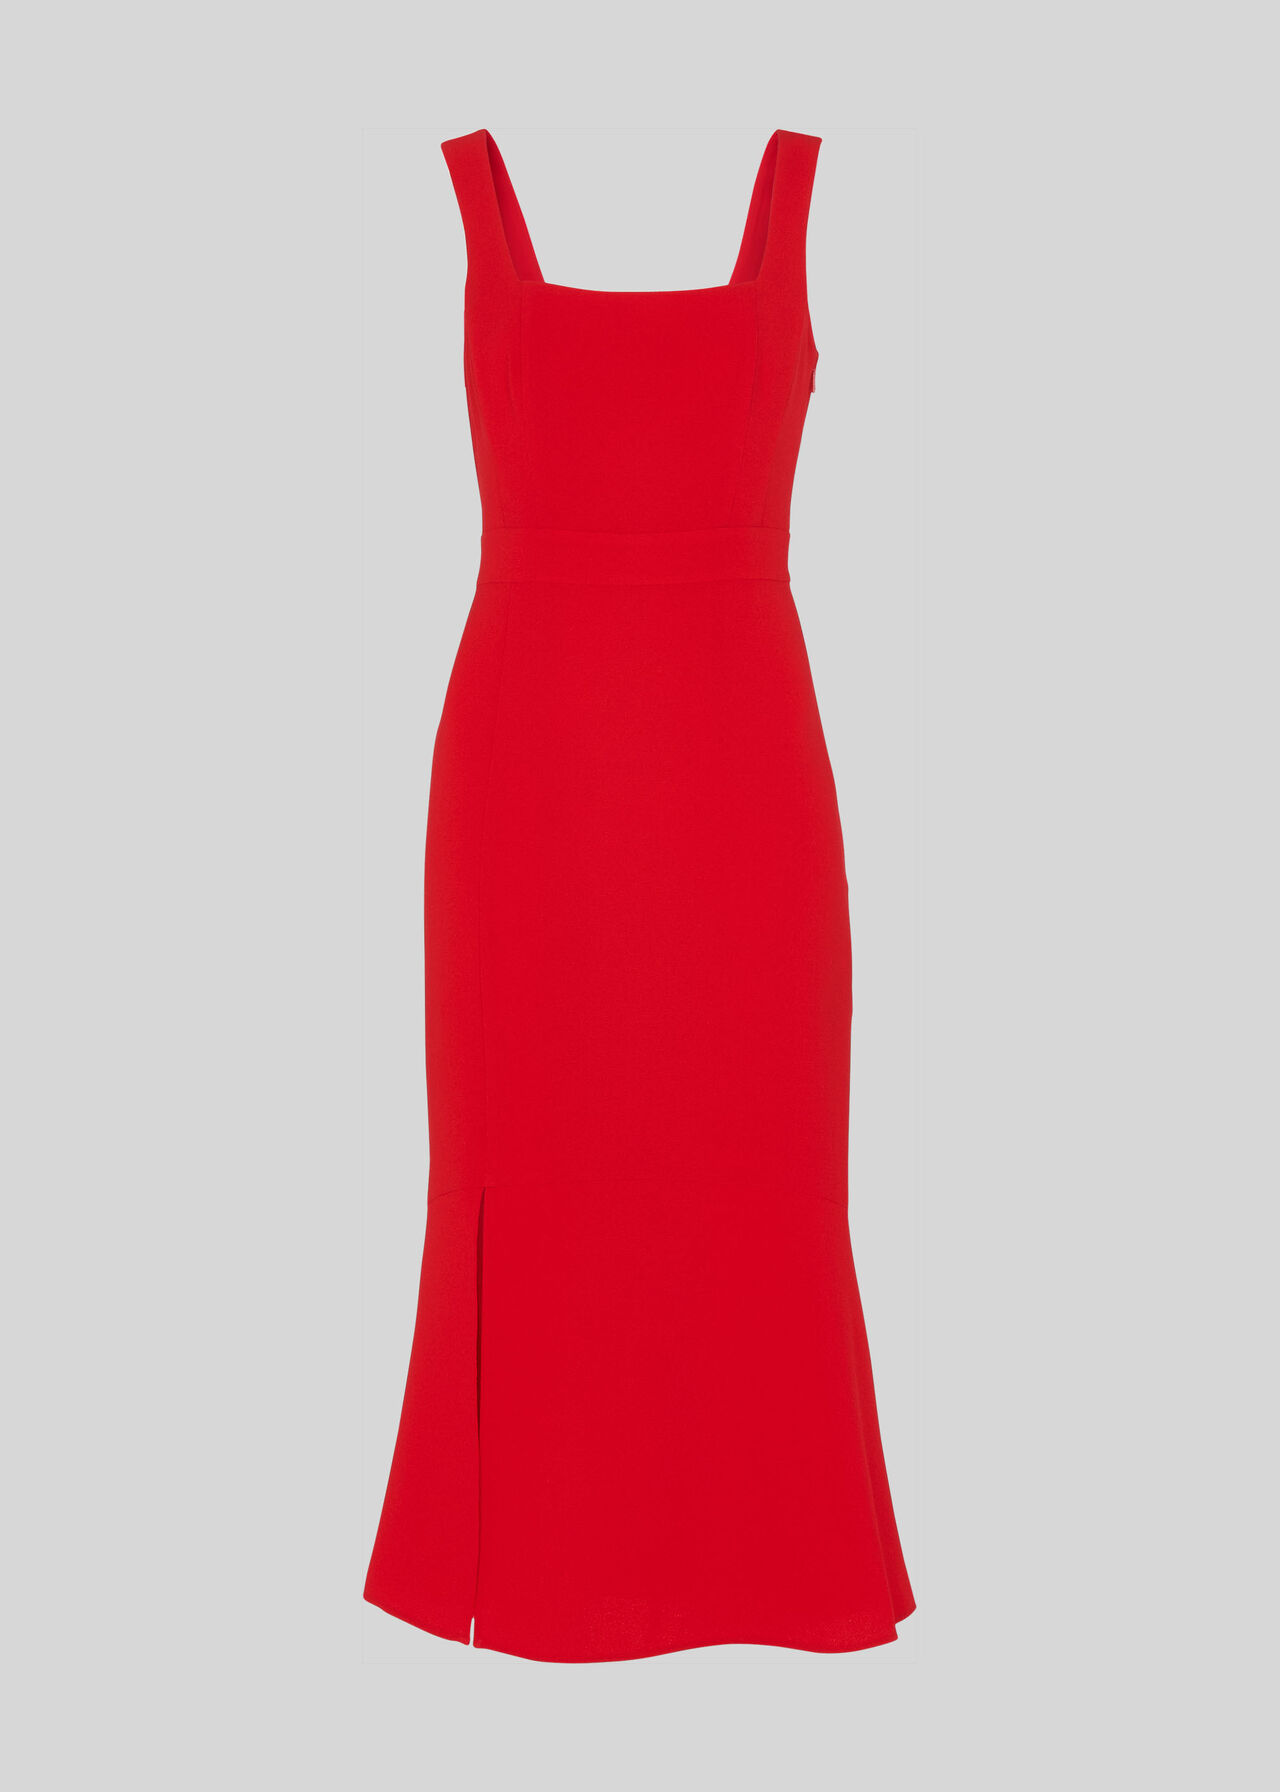 Milla Square Neck Dress Red